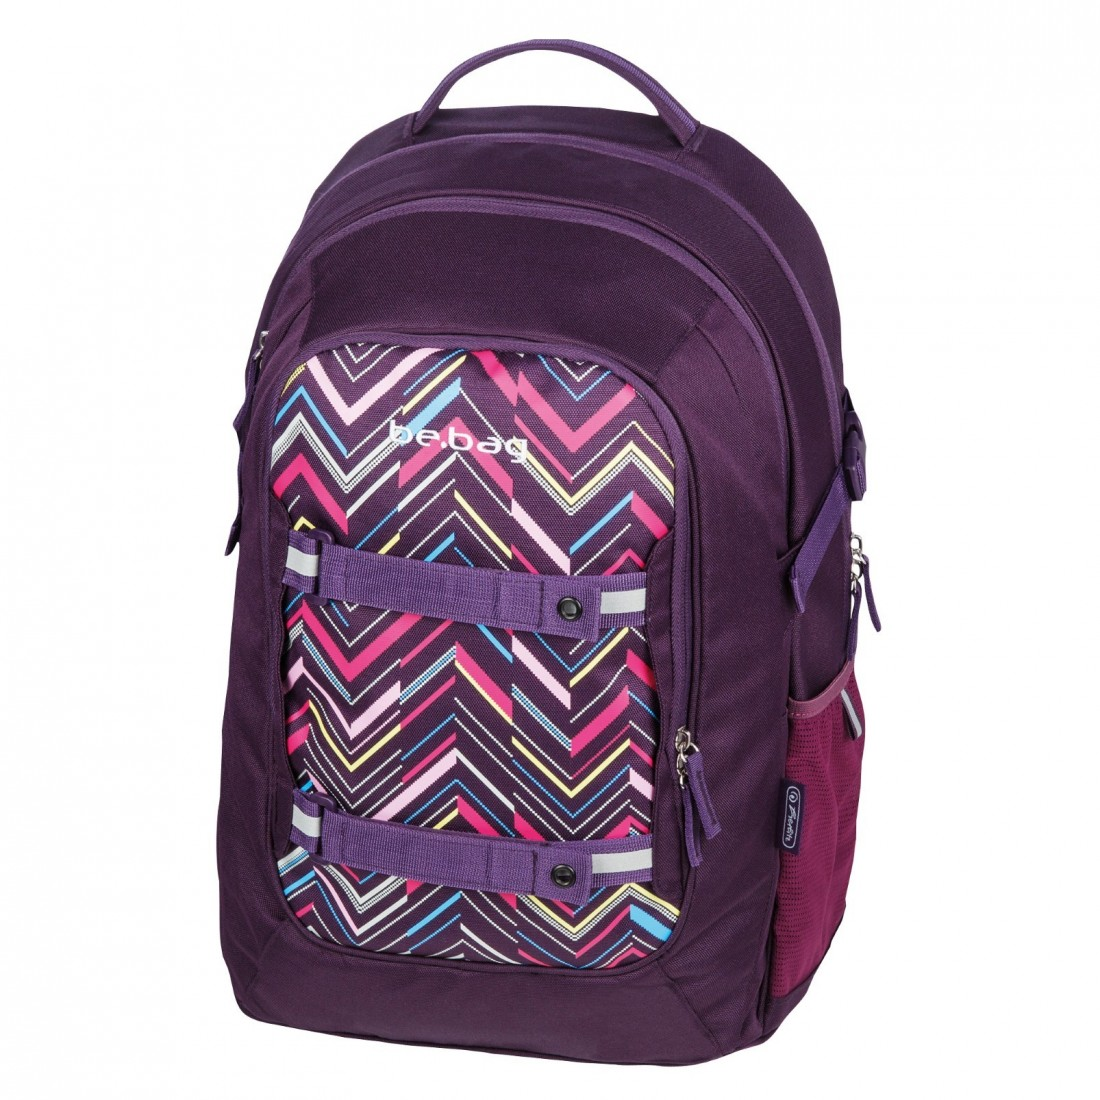 PLECAK HERLITZ BE.BAG BEAT KALEIDOSCOPE